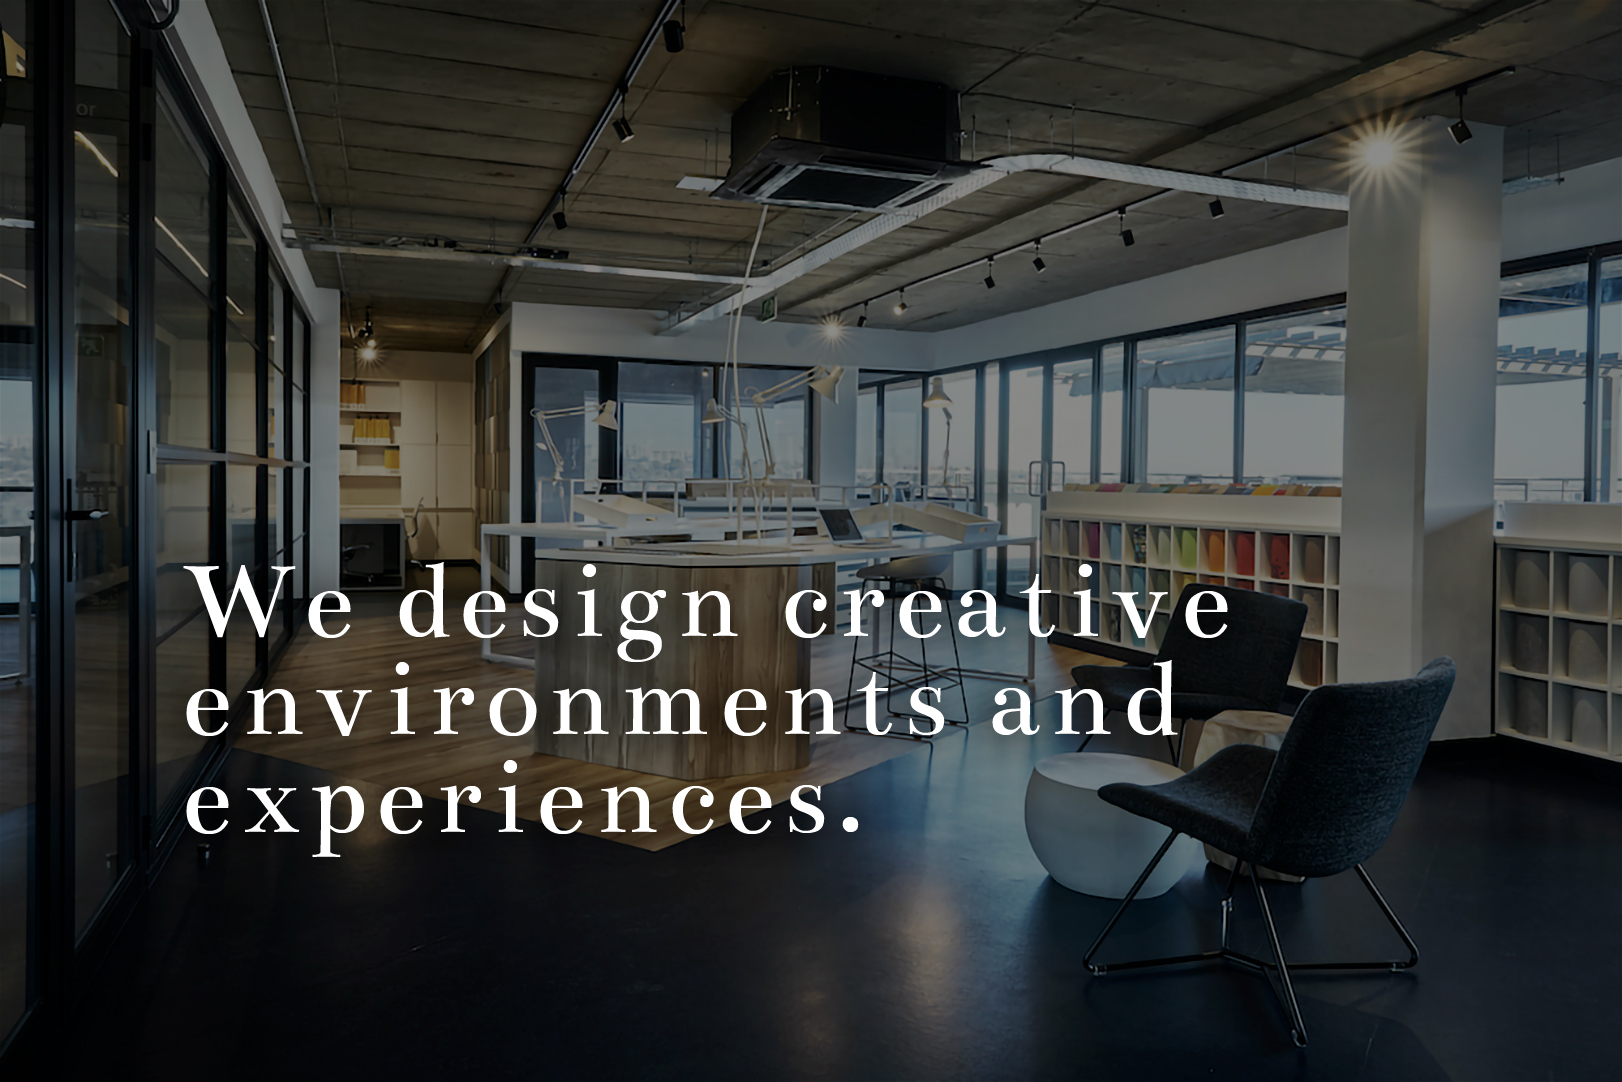 8a Creative Hero image with tagline - We design creative environments and experiences